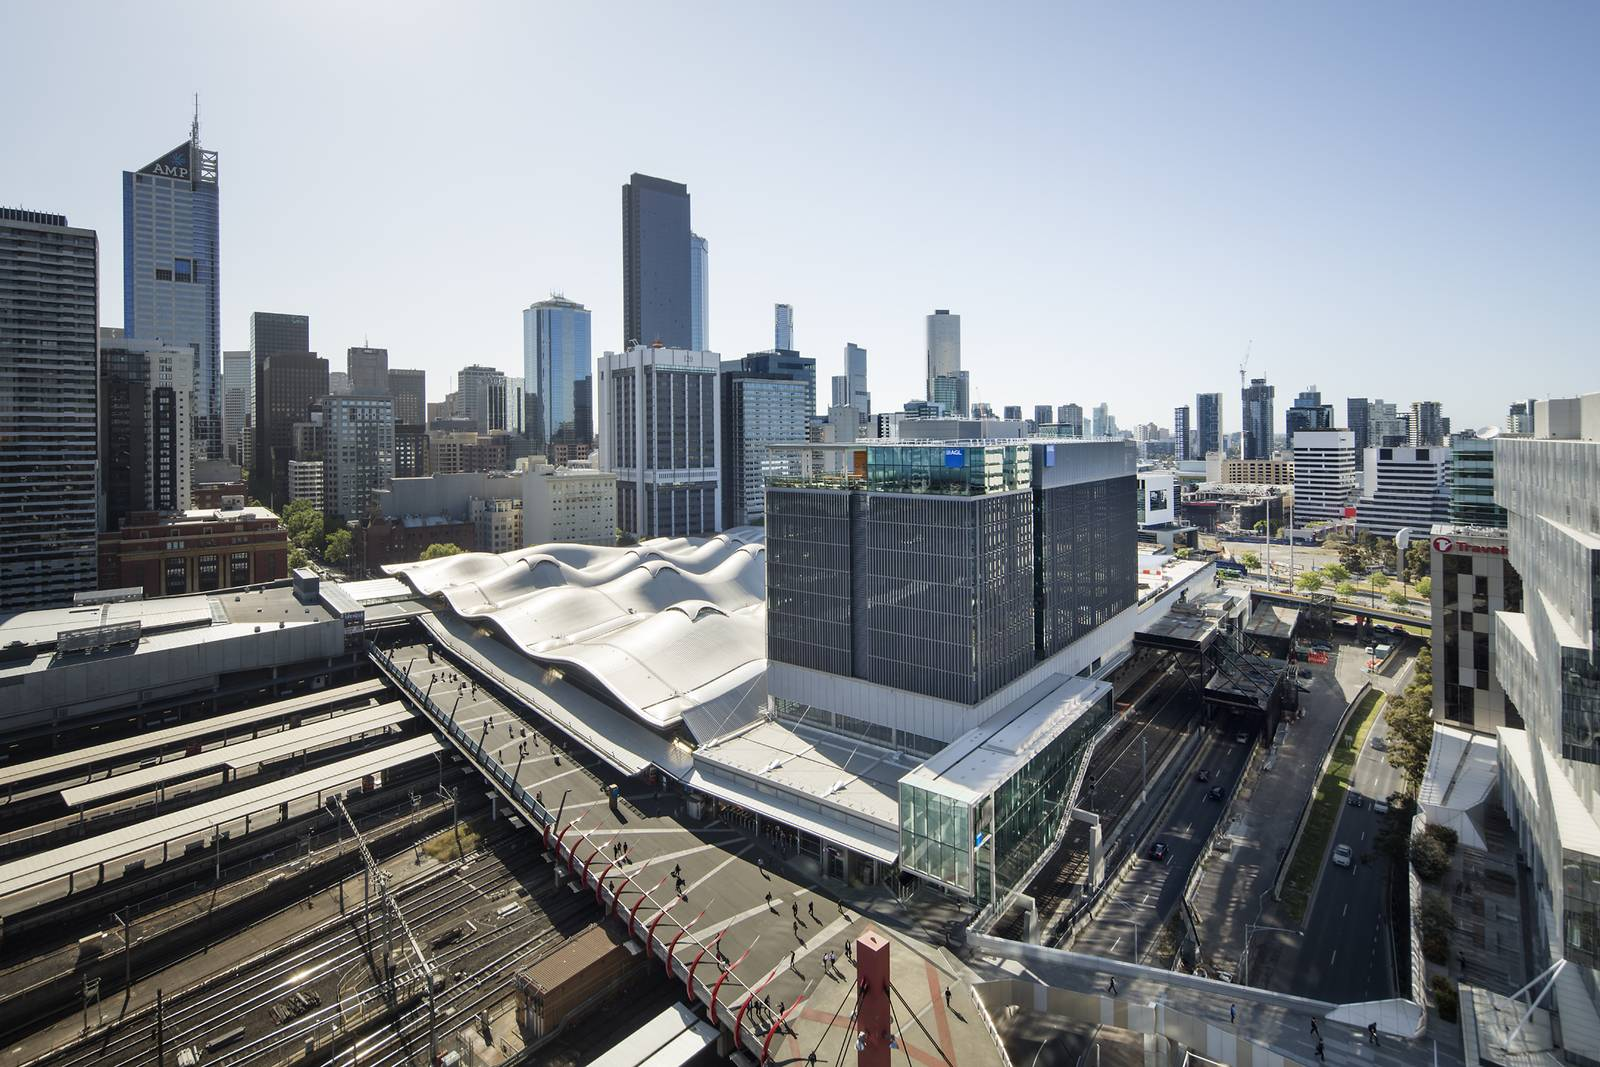 All roads lead to Southern Cross Station